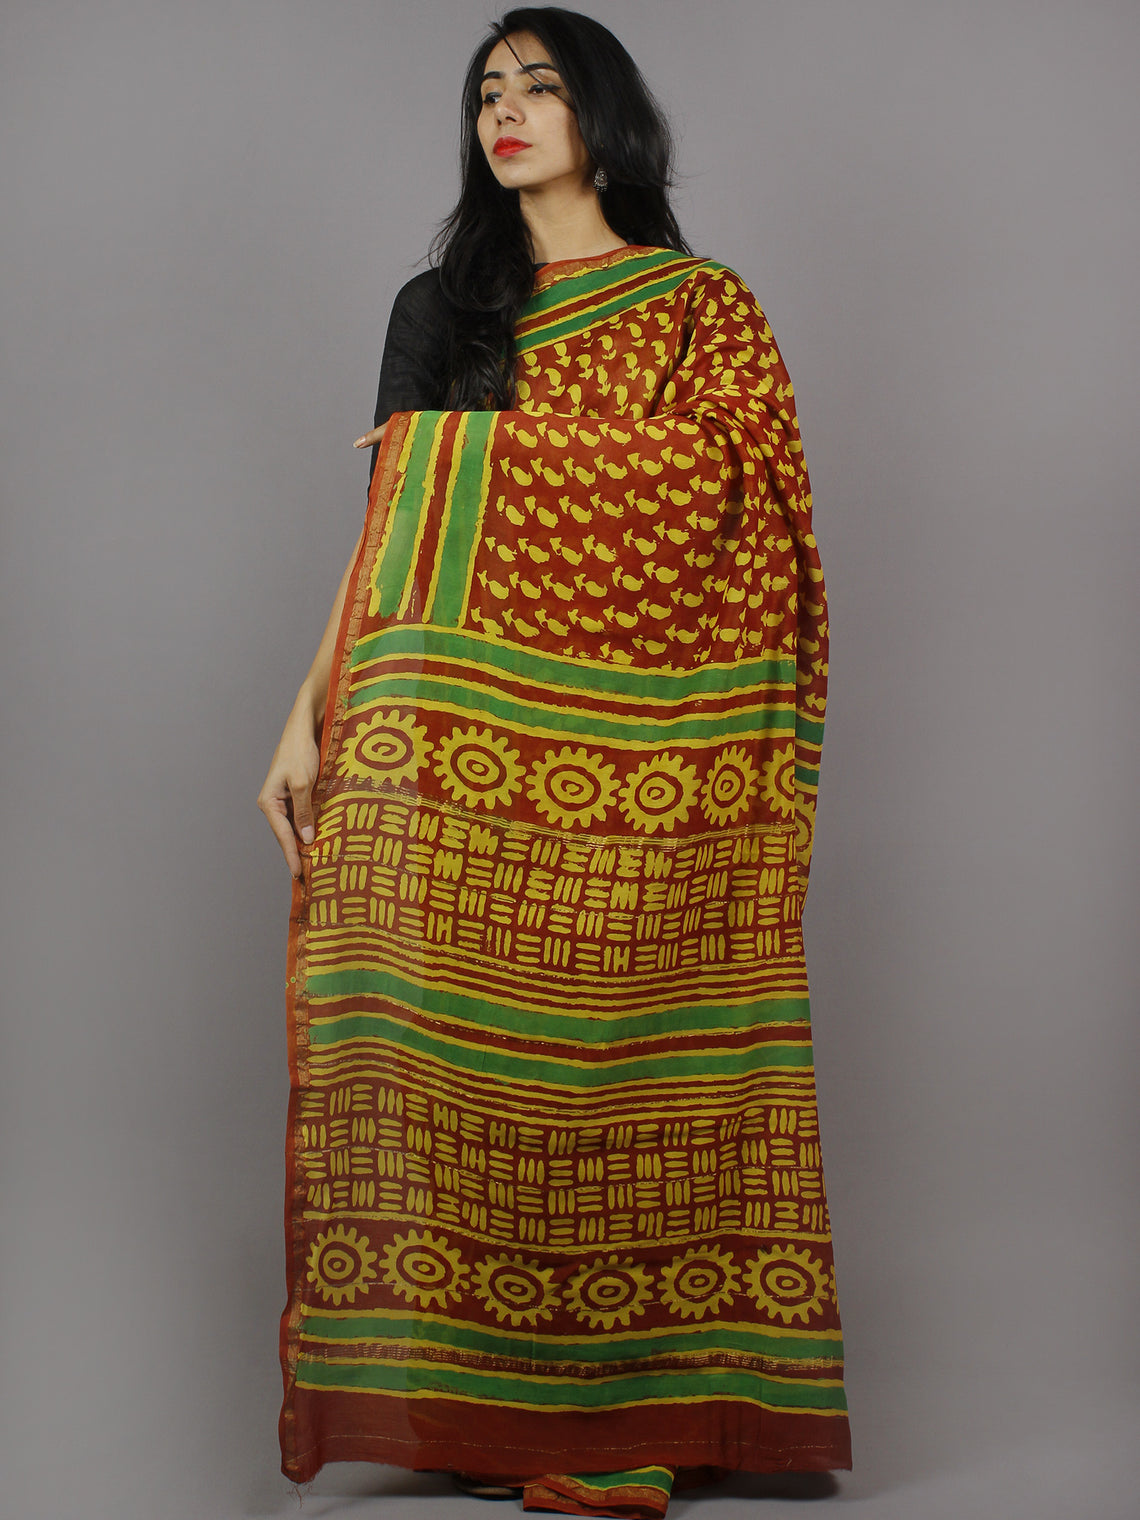 Maroon Yellow Green Hand Block Printed in Natural Colors Chanderi Saree - S03170768